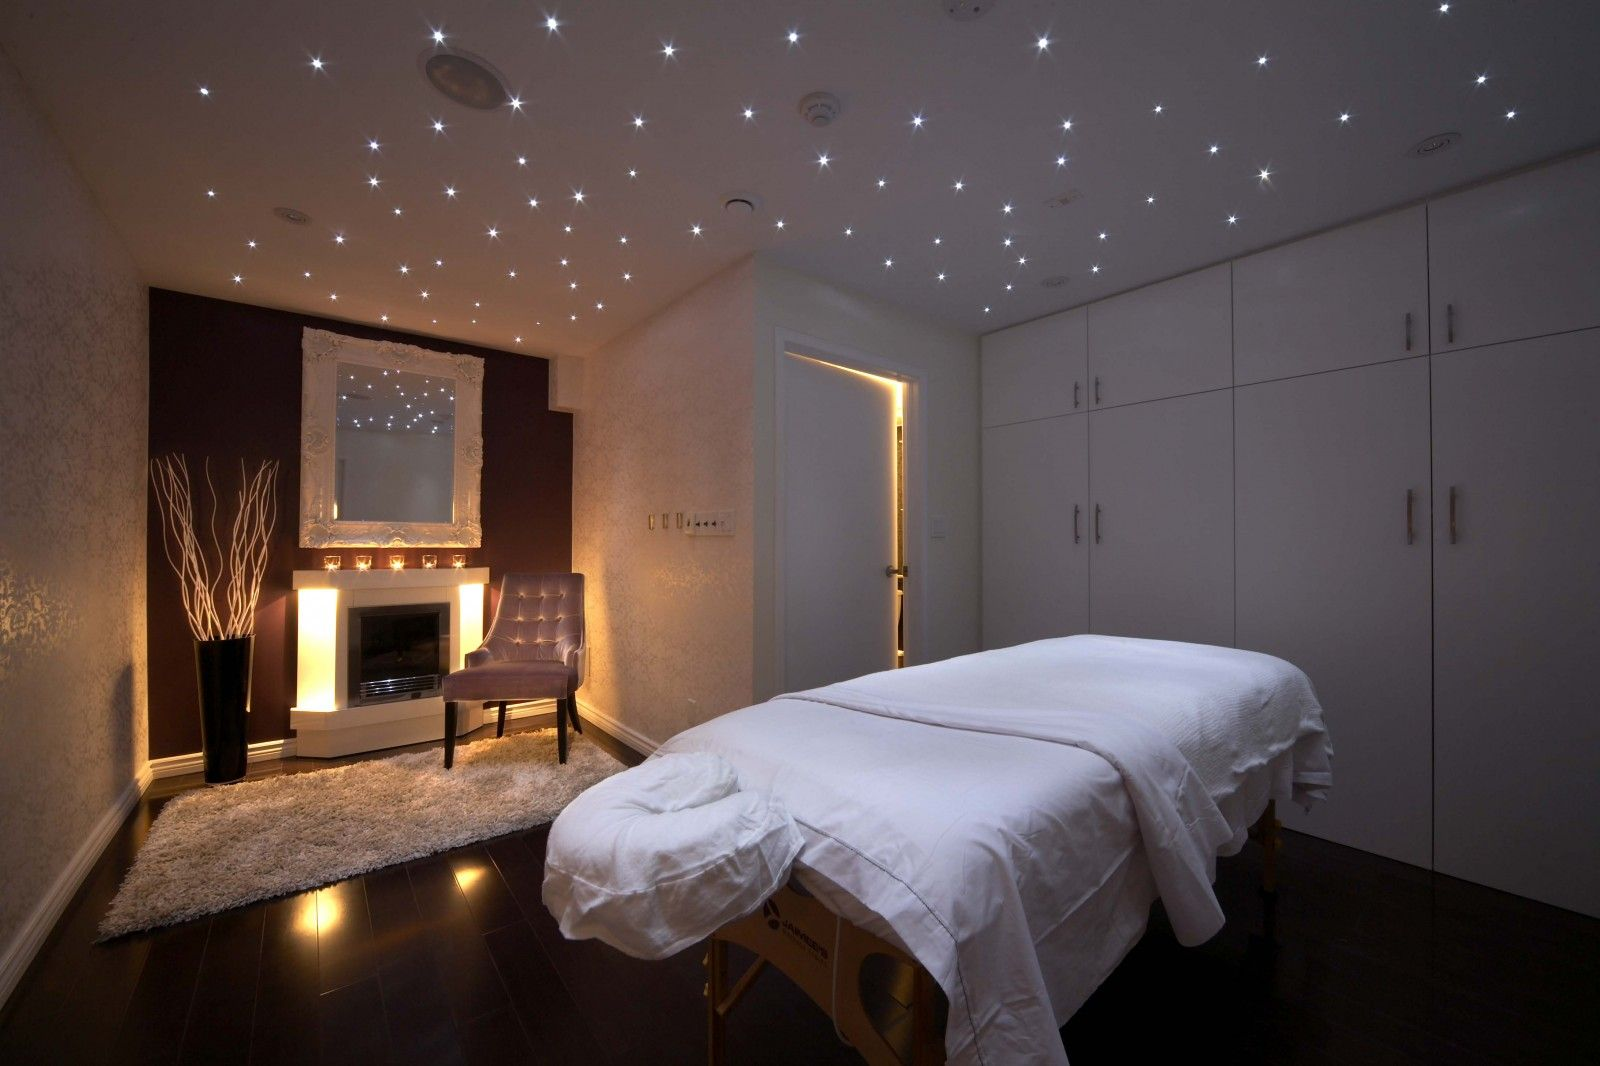 Pearl spa massage room interior design toronto interior design pinterest pearl spa - Decoratie spa ...